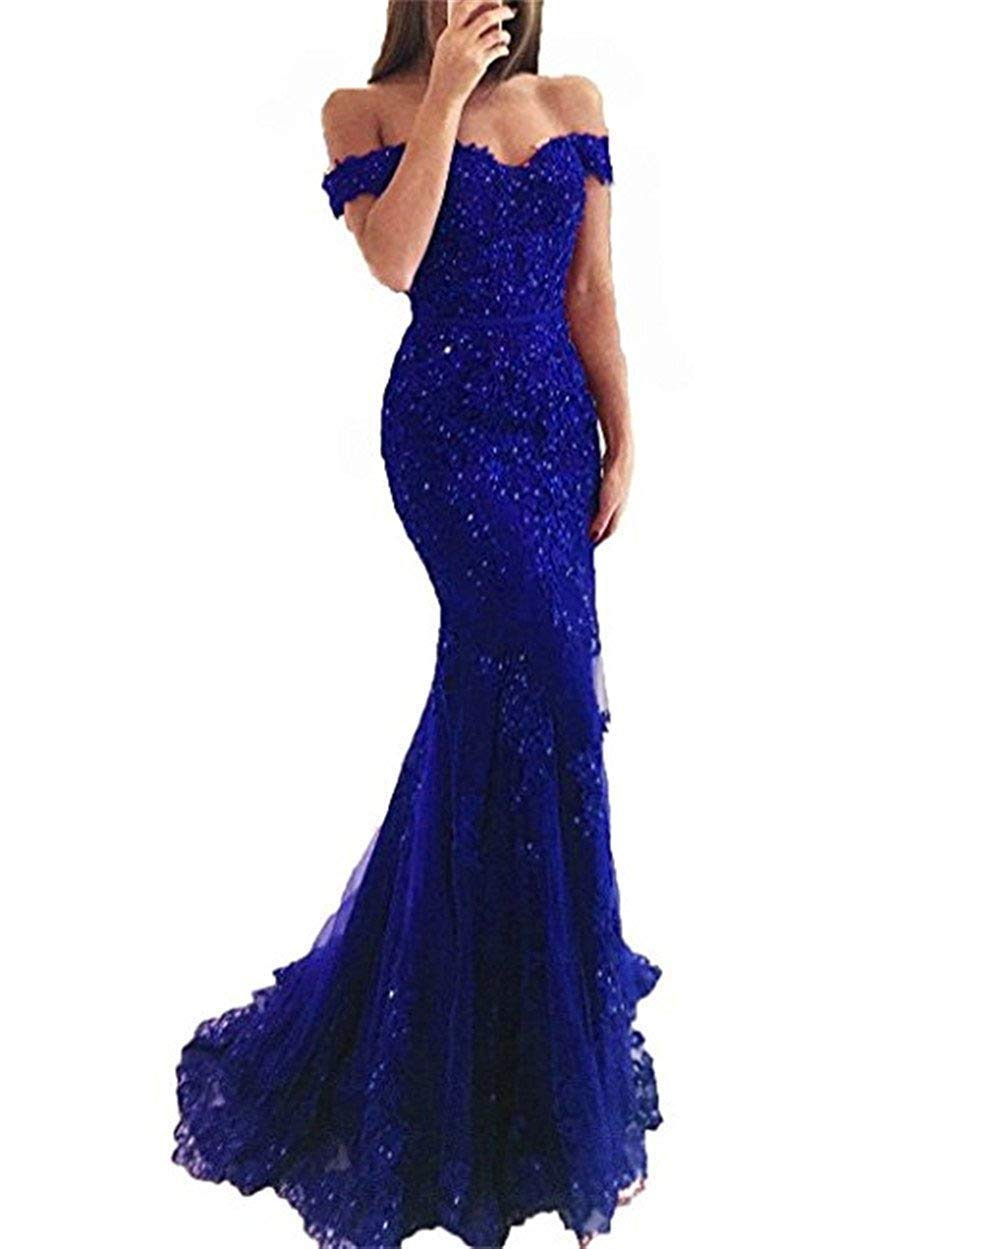 Prom Dresses - Halter Prom Dresses Long Satin Backless Beaded Evening Formal Gowns With Pockets For Women